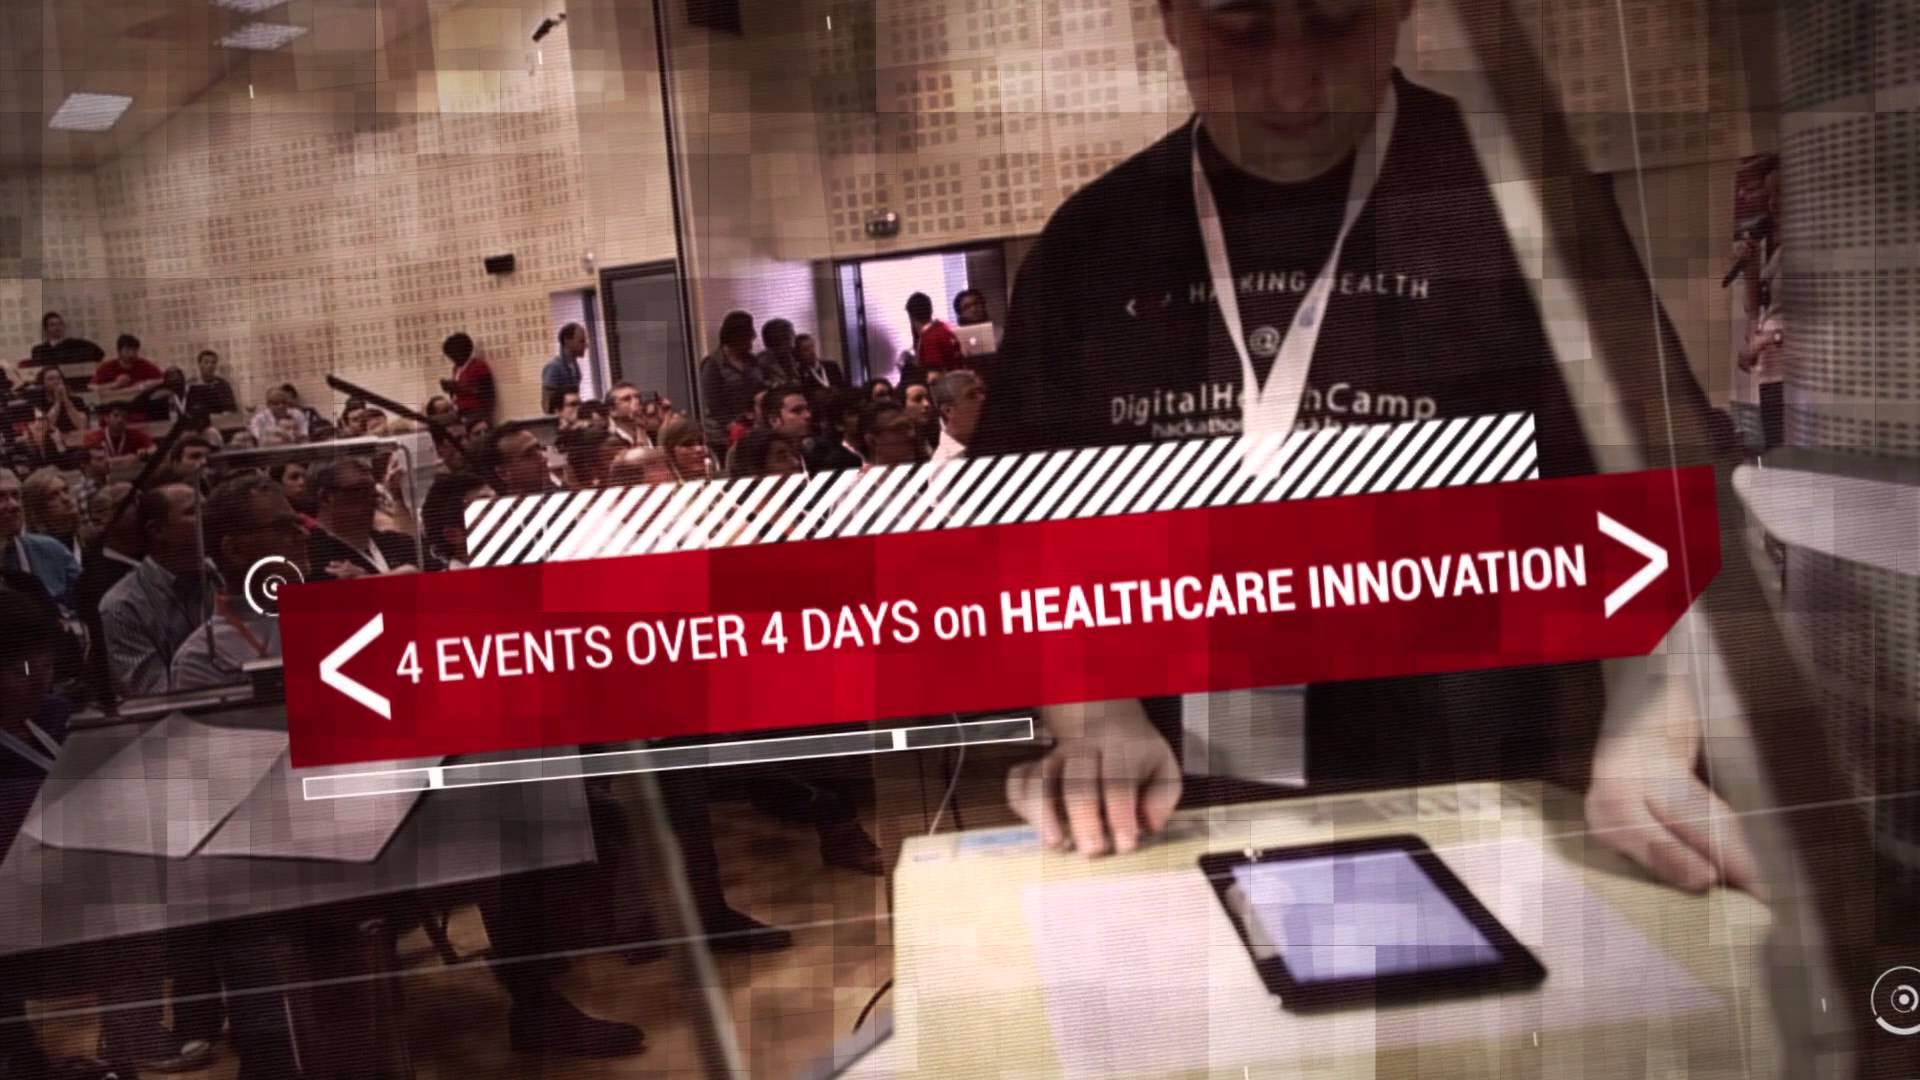 Hacking Health Camp in Strasbourg, March 19th-22th - Pryv